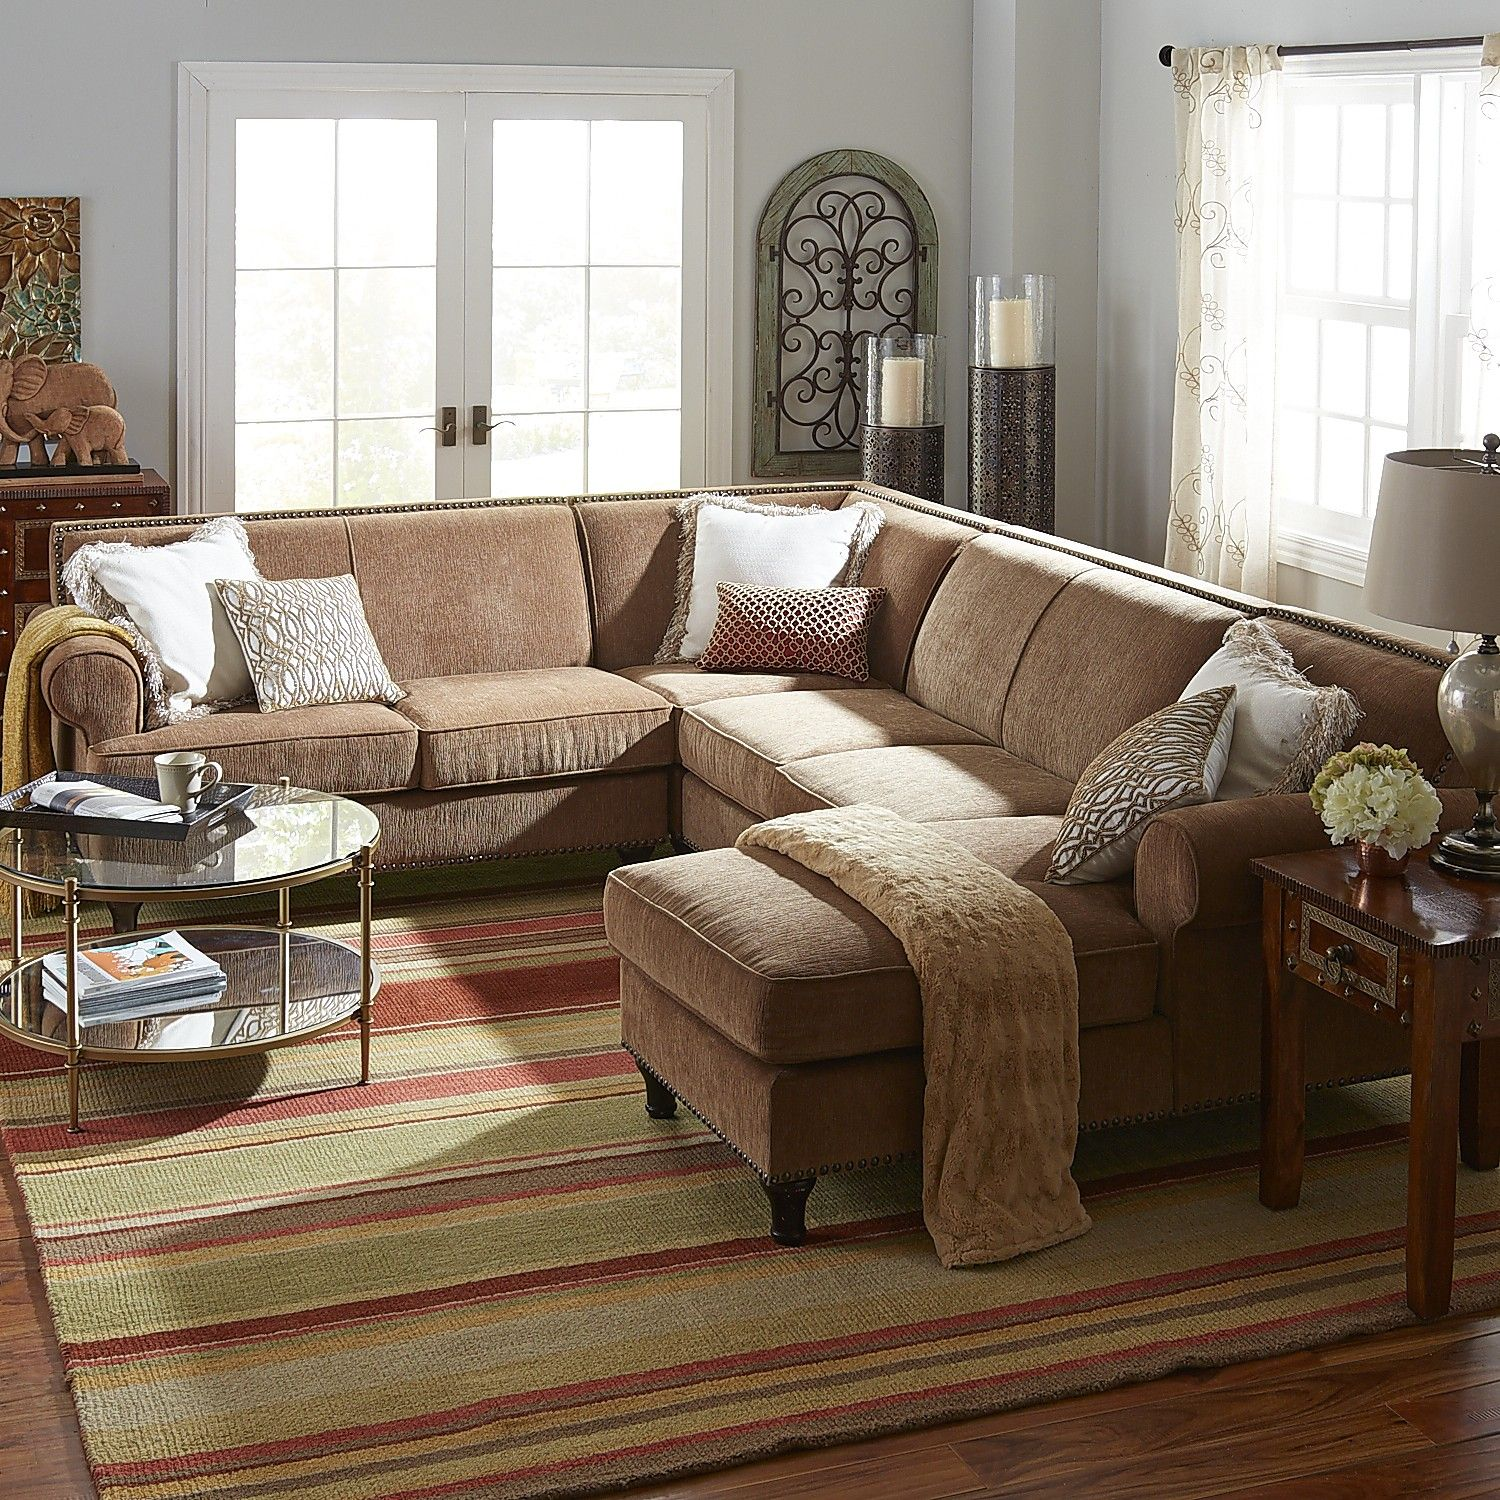 Brown Build You Own Carmen Sectional - Toasted Pecan ...